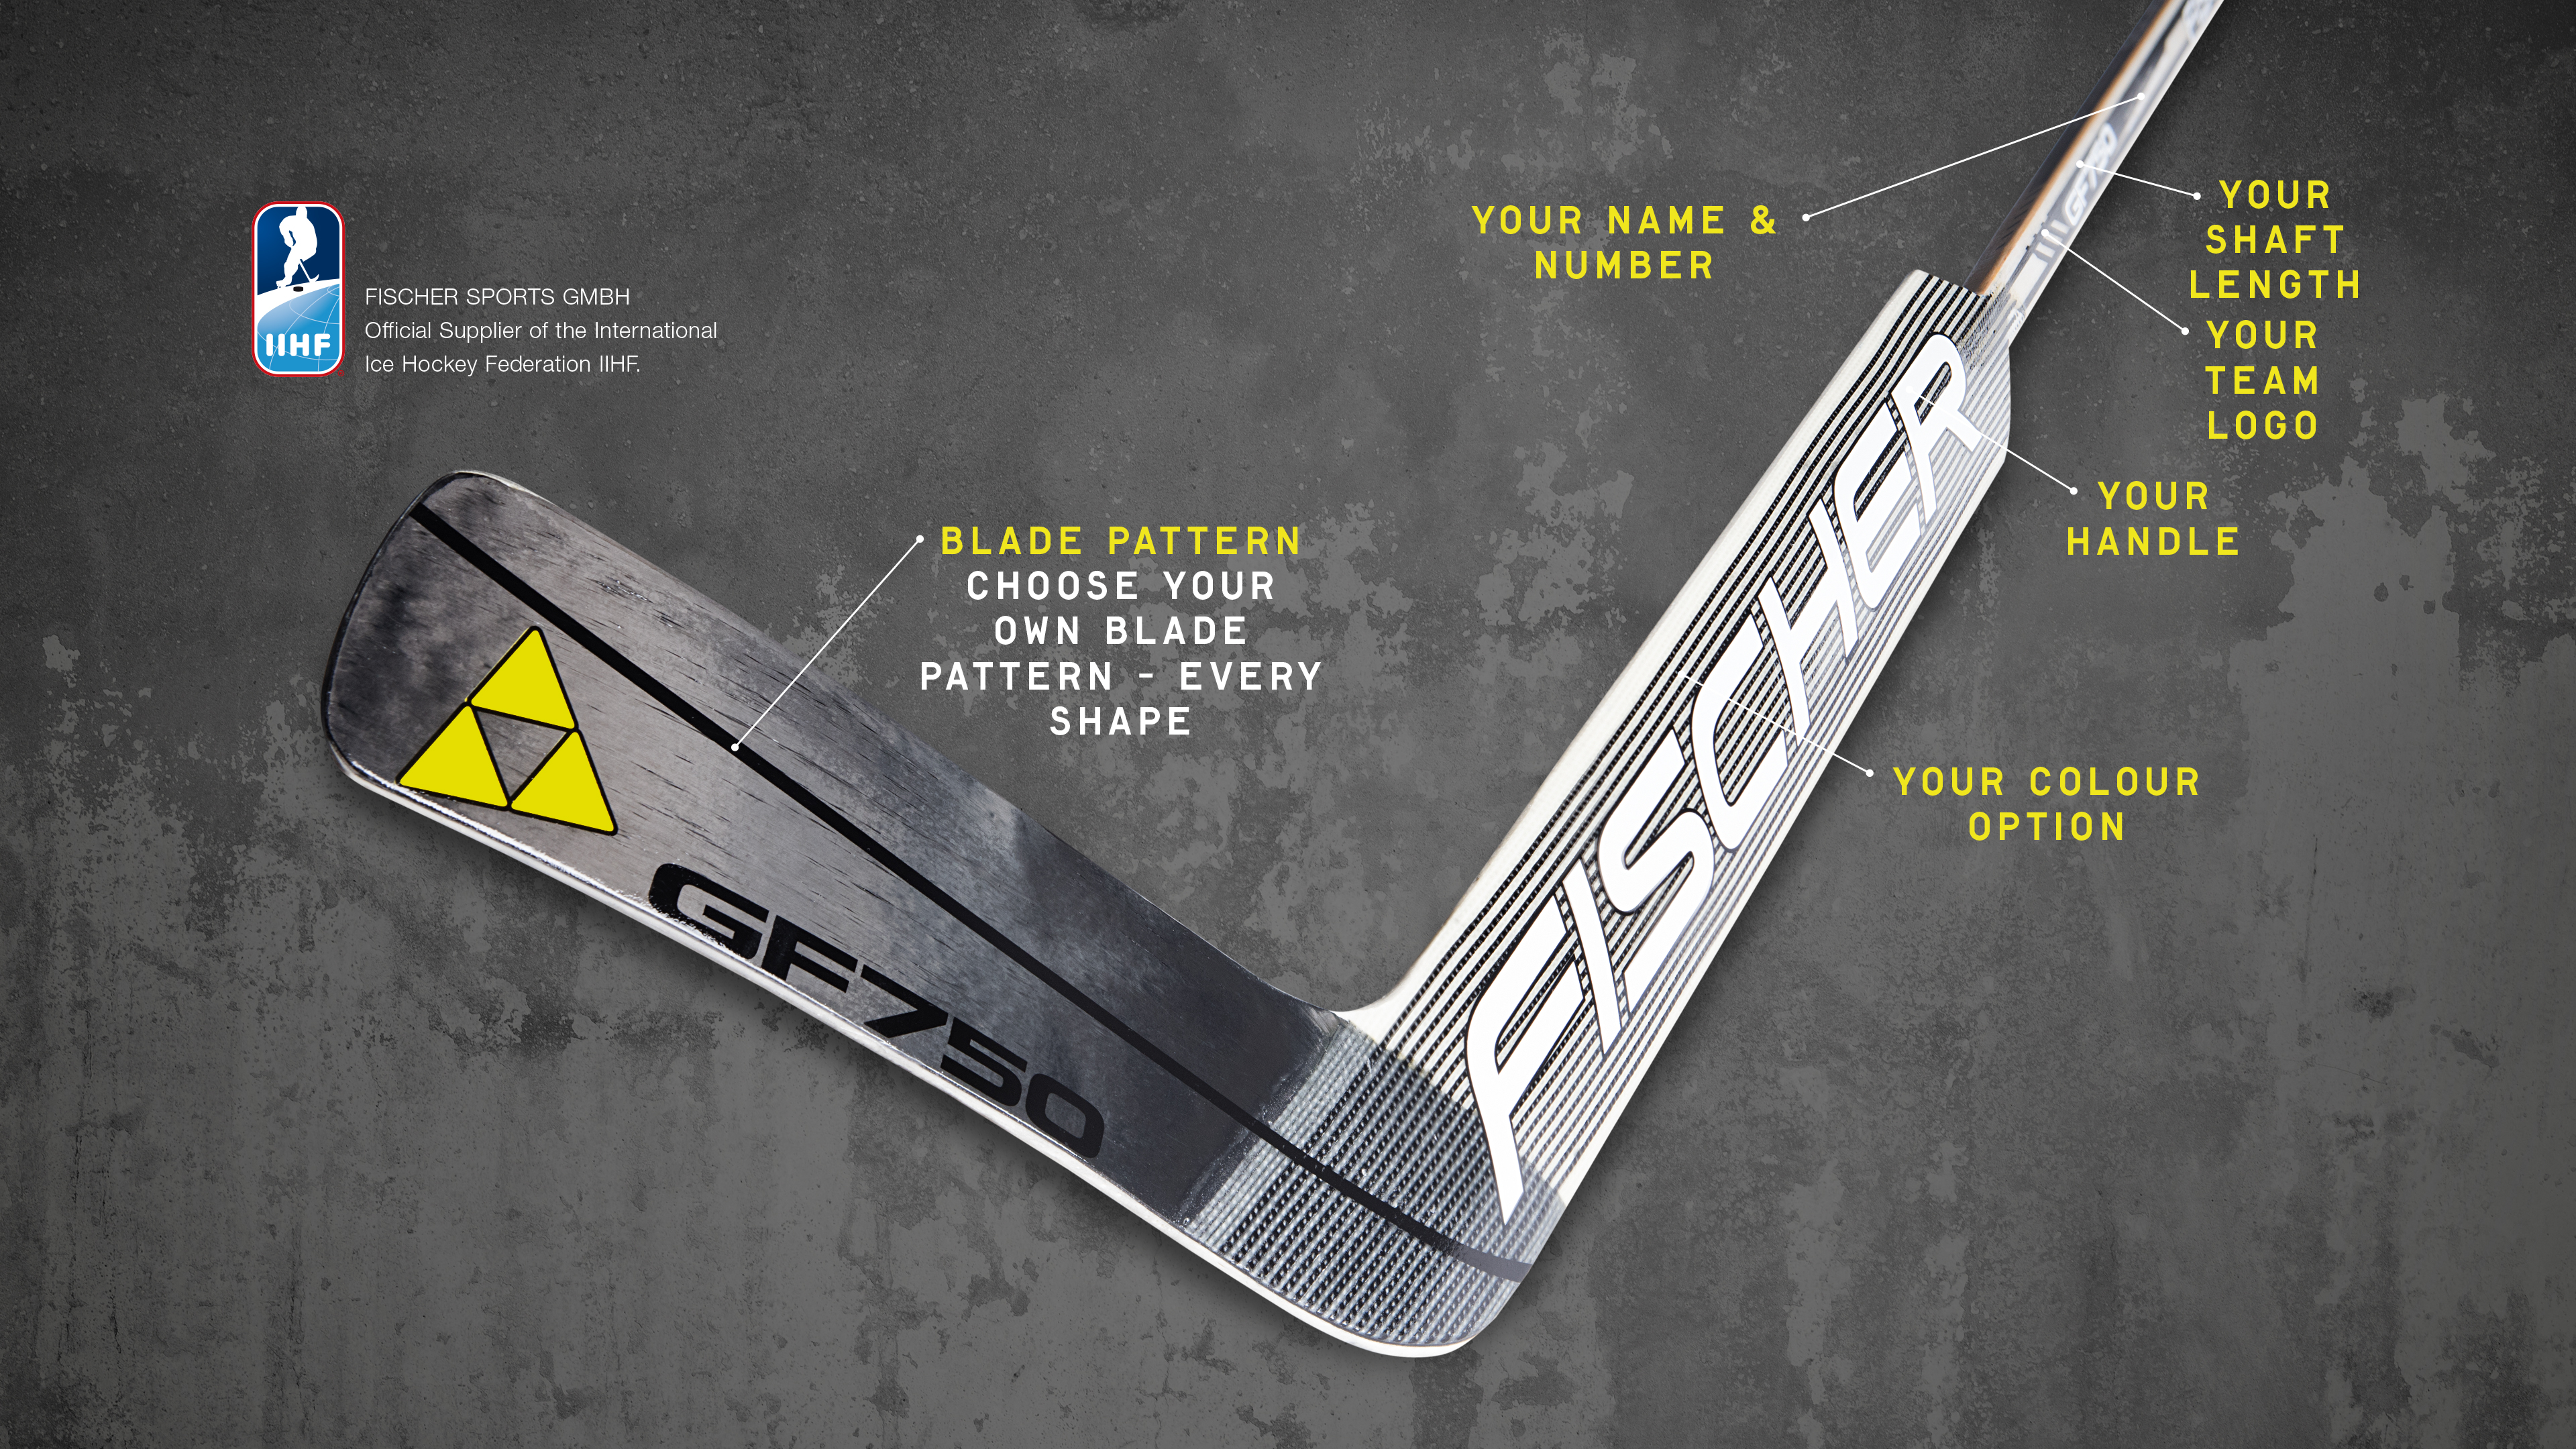 hockey - Fischer Sports